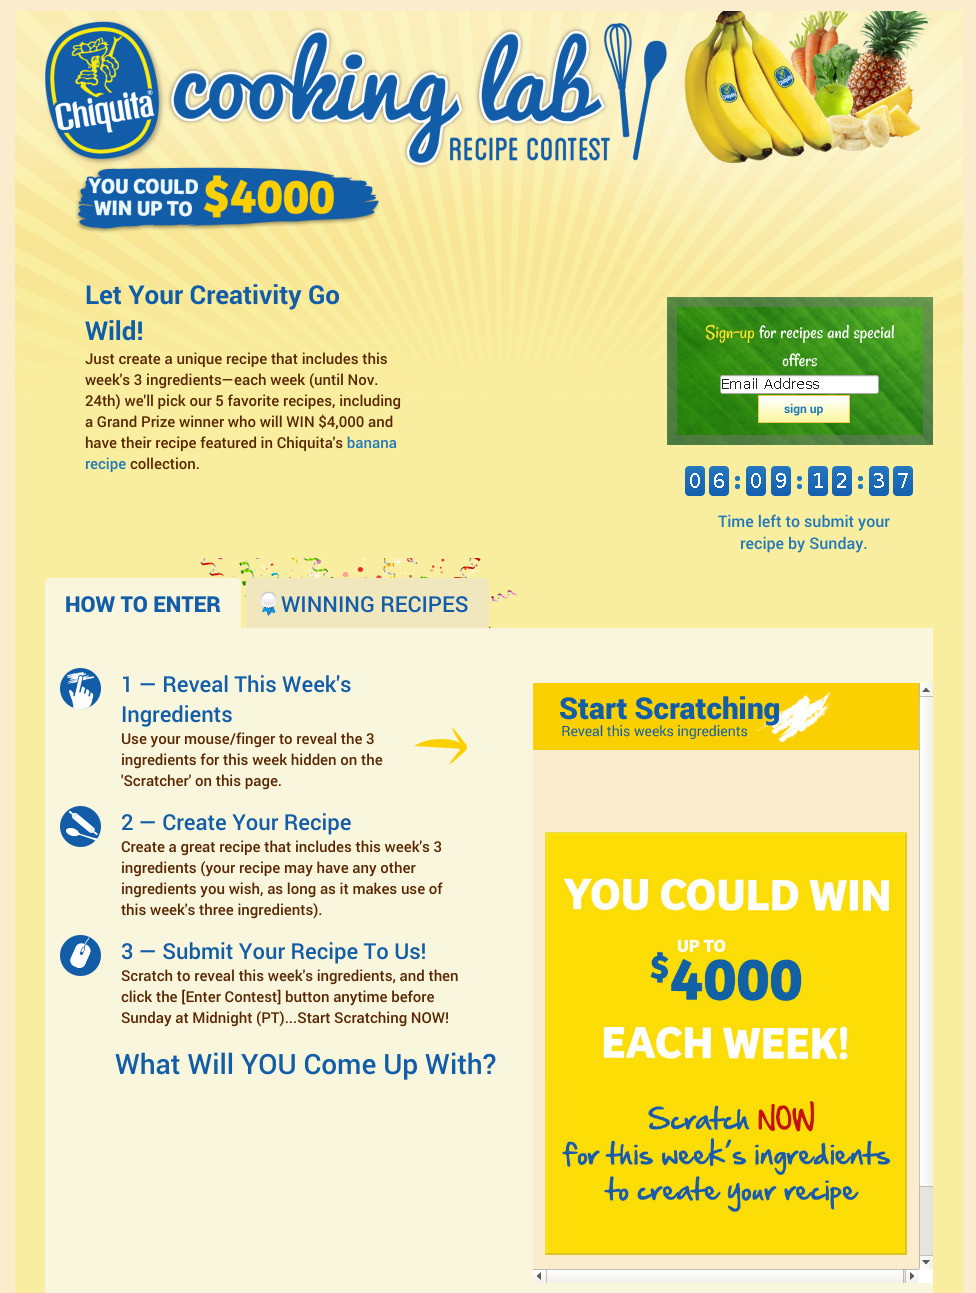 Should You Run A Sweepstakes or A Contest?